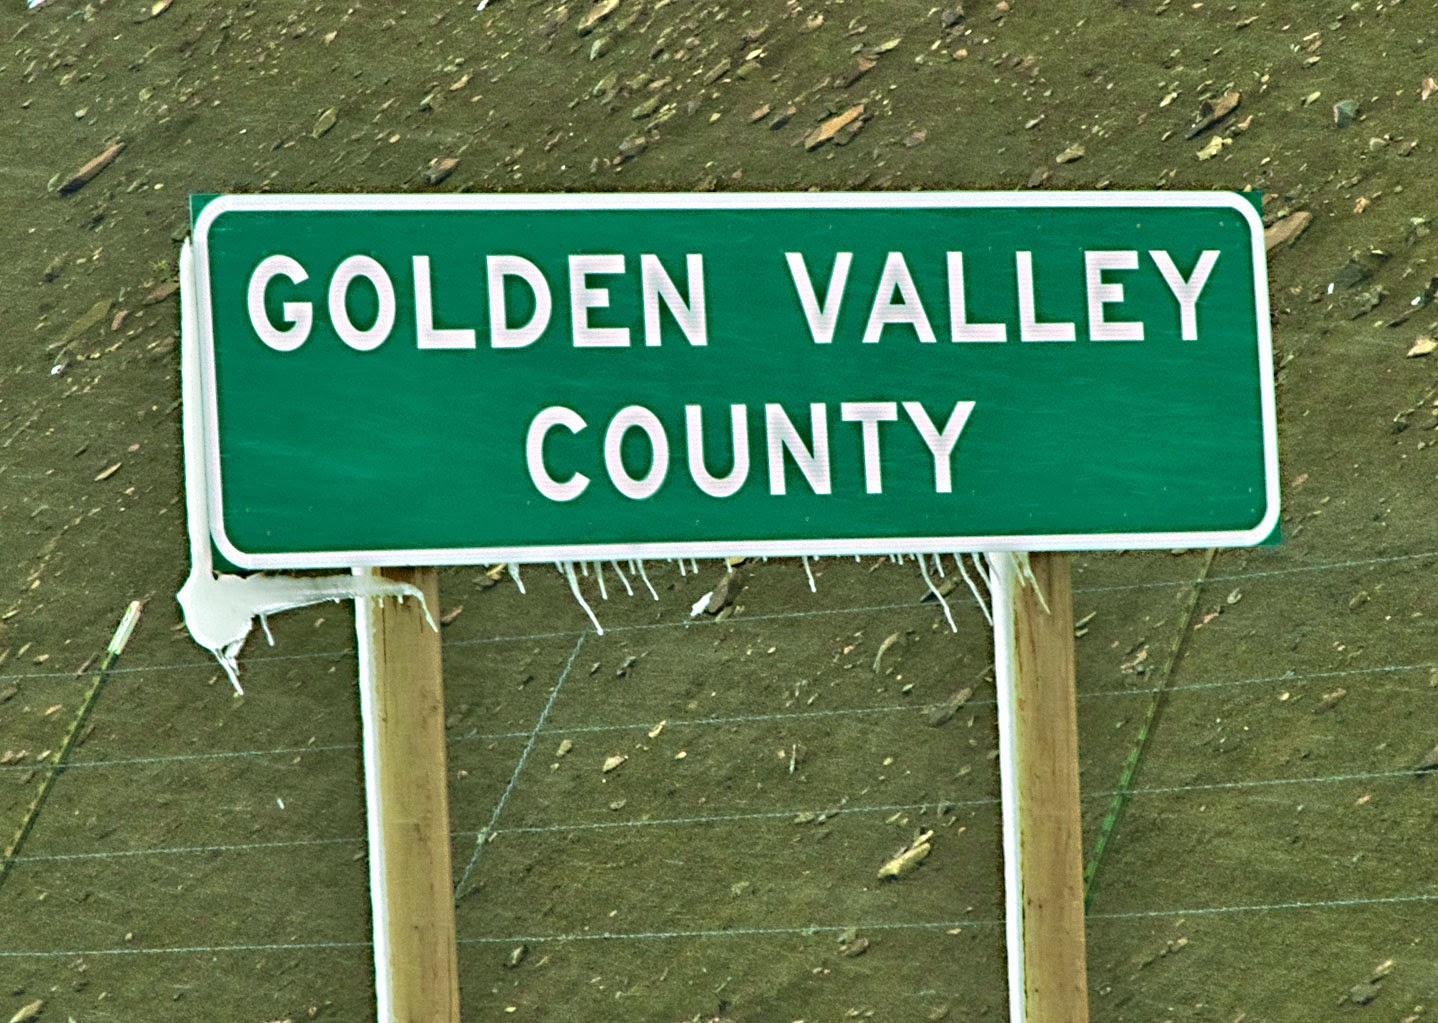 golden valley county singles Golden valley county public schools spend $19,757 per student the average school expenditure in the us is $12,383 there are about 51 students per teacher in golden valley county.